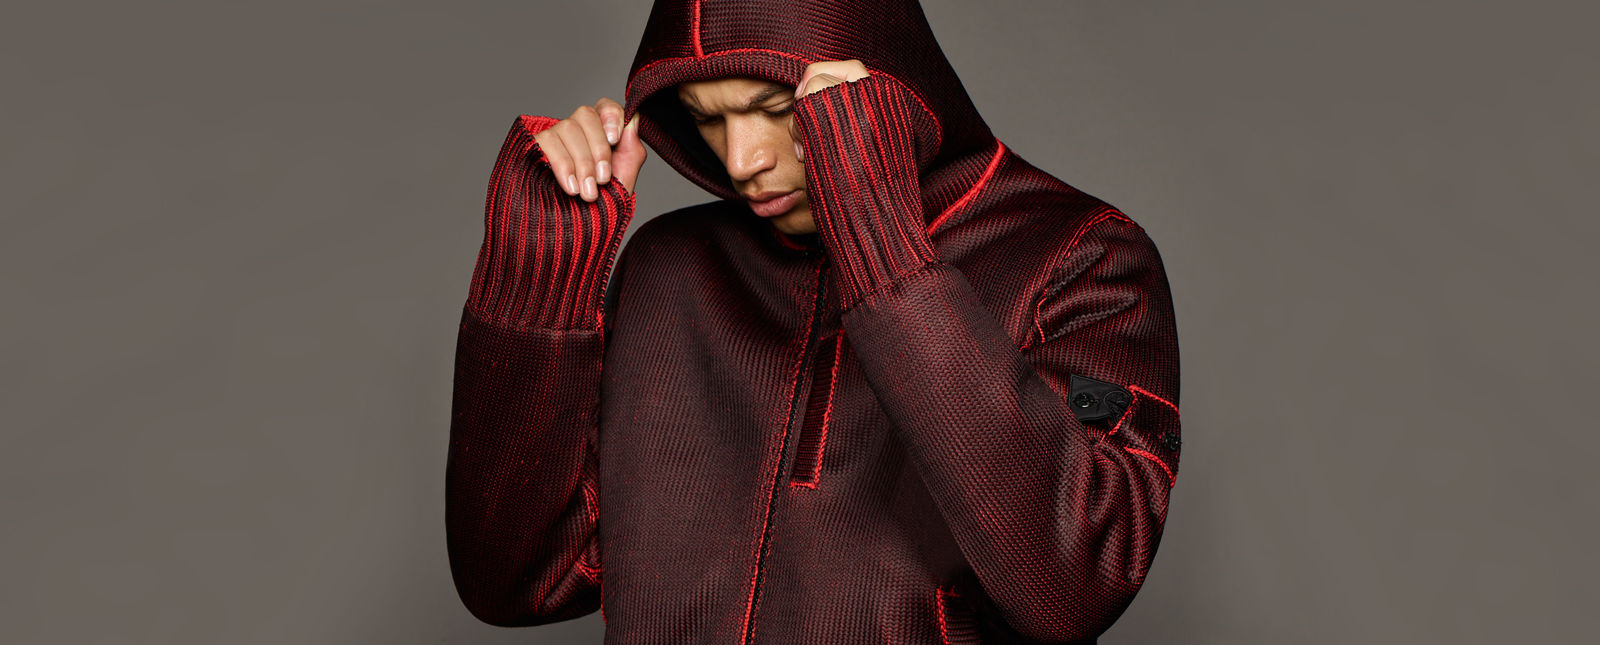 Model wearing a deep burgundy knit hoodie with bright red  line details along the seams, zipper placket, and wide ribbed cuffs